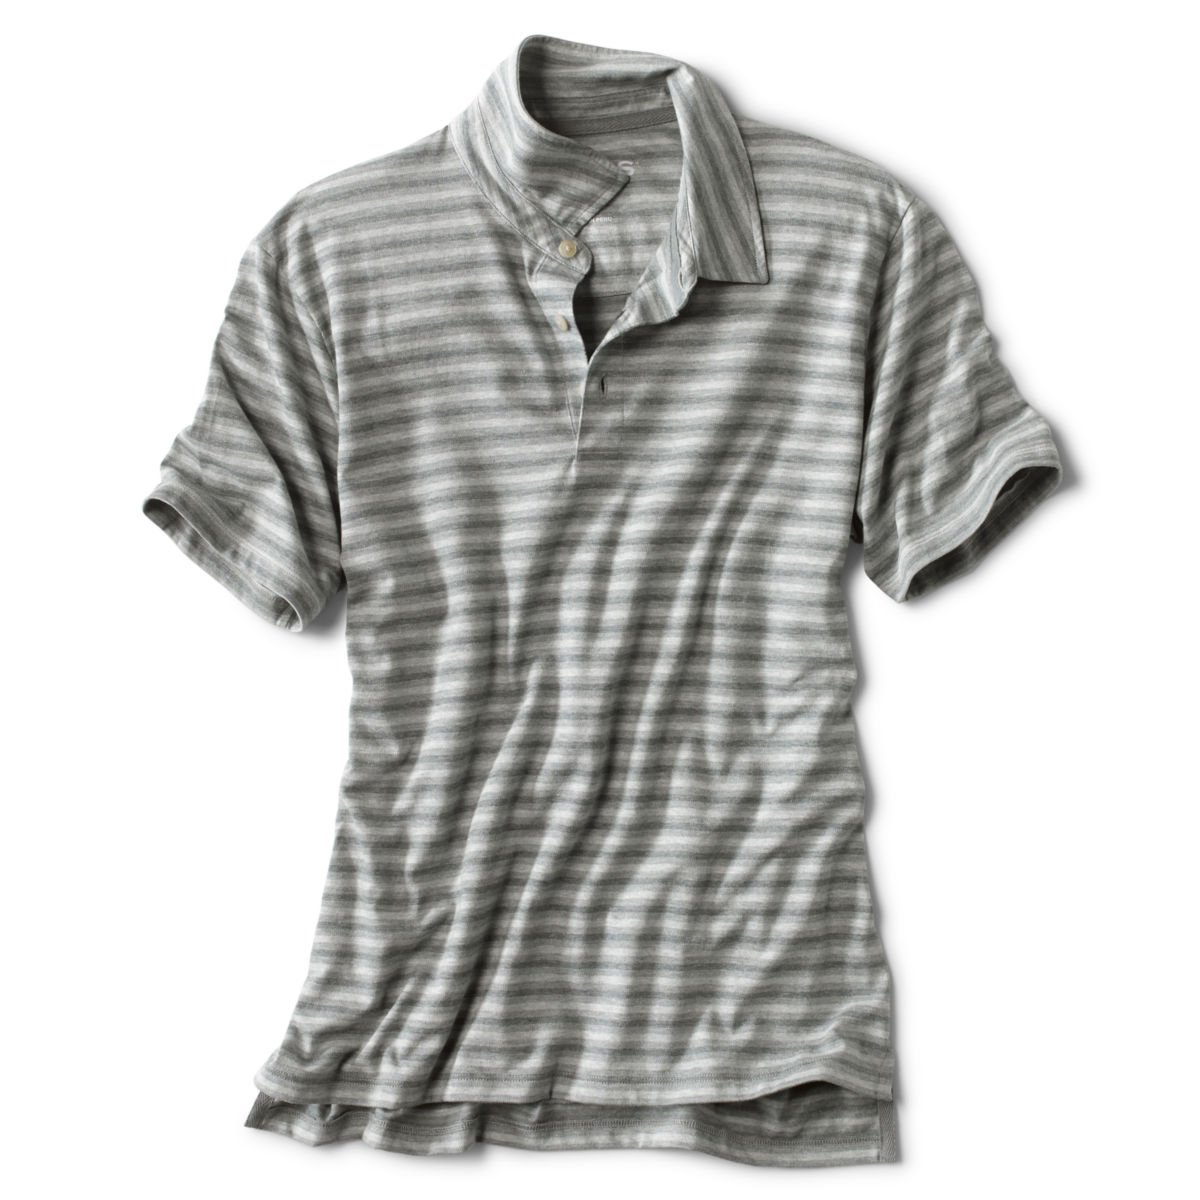 Disperse Dye Oxford Polo - GRAYimage number 0